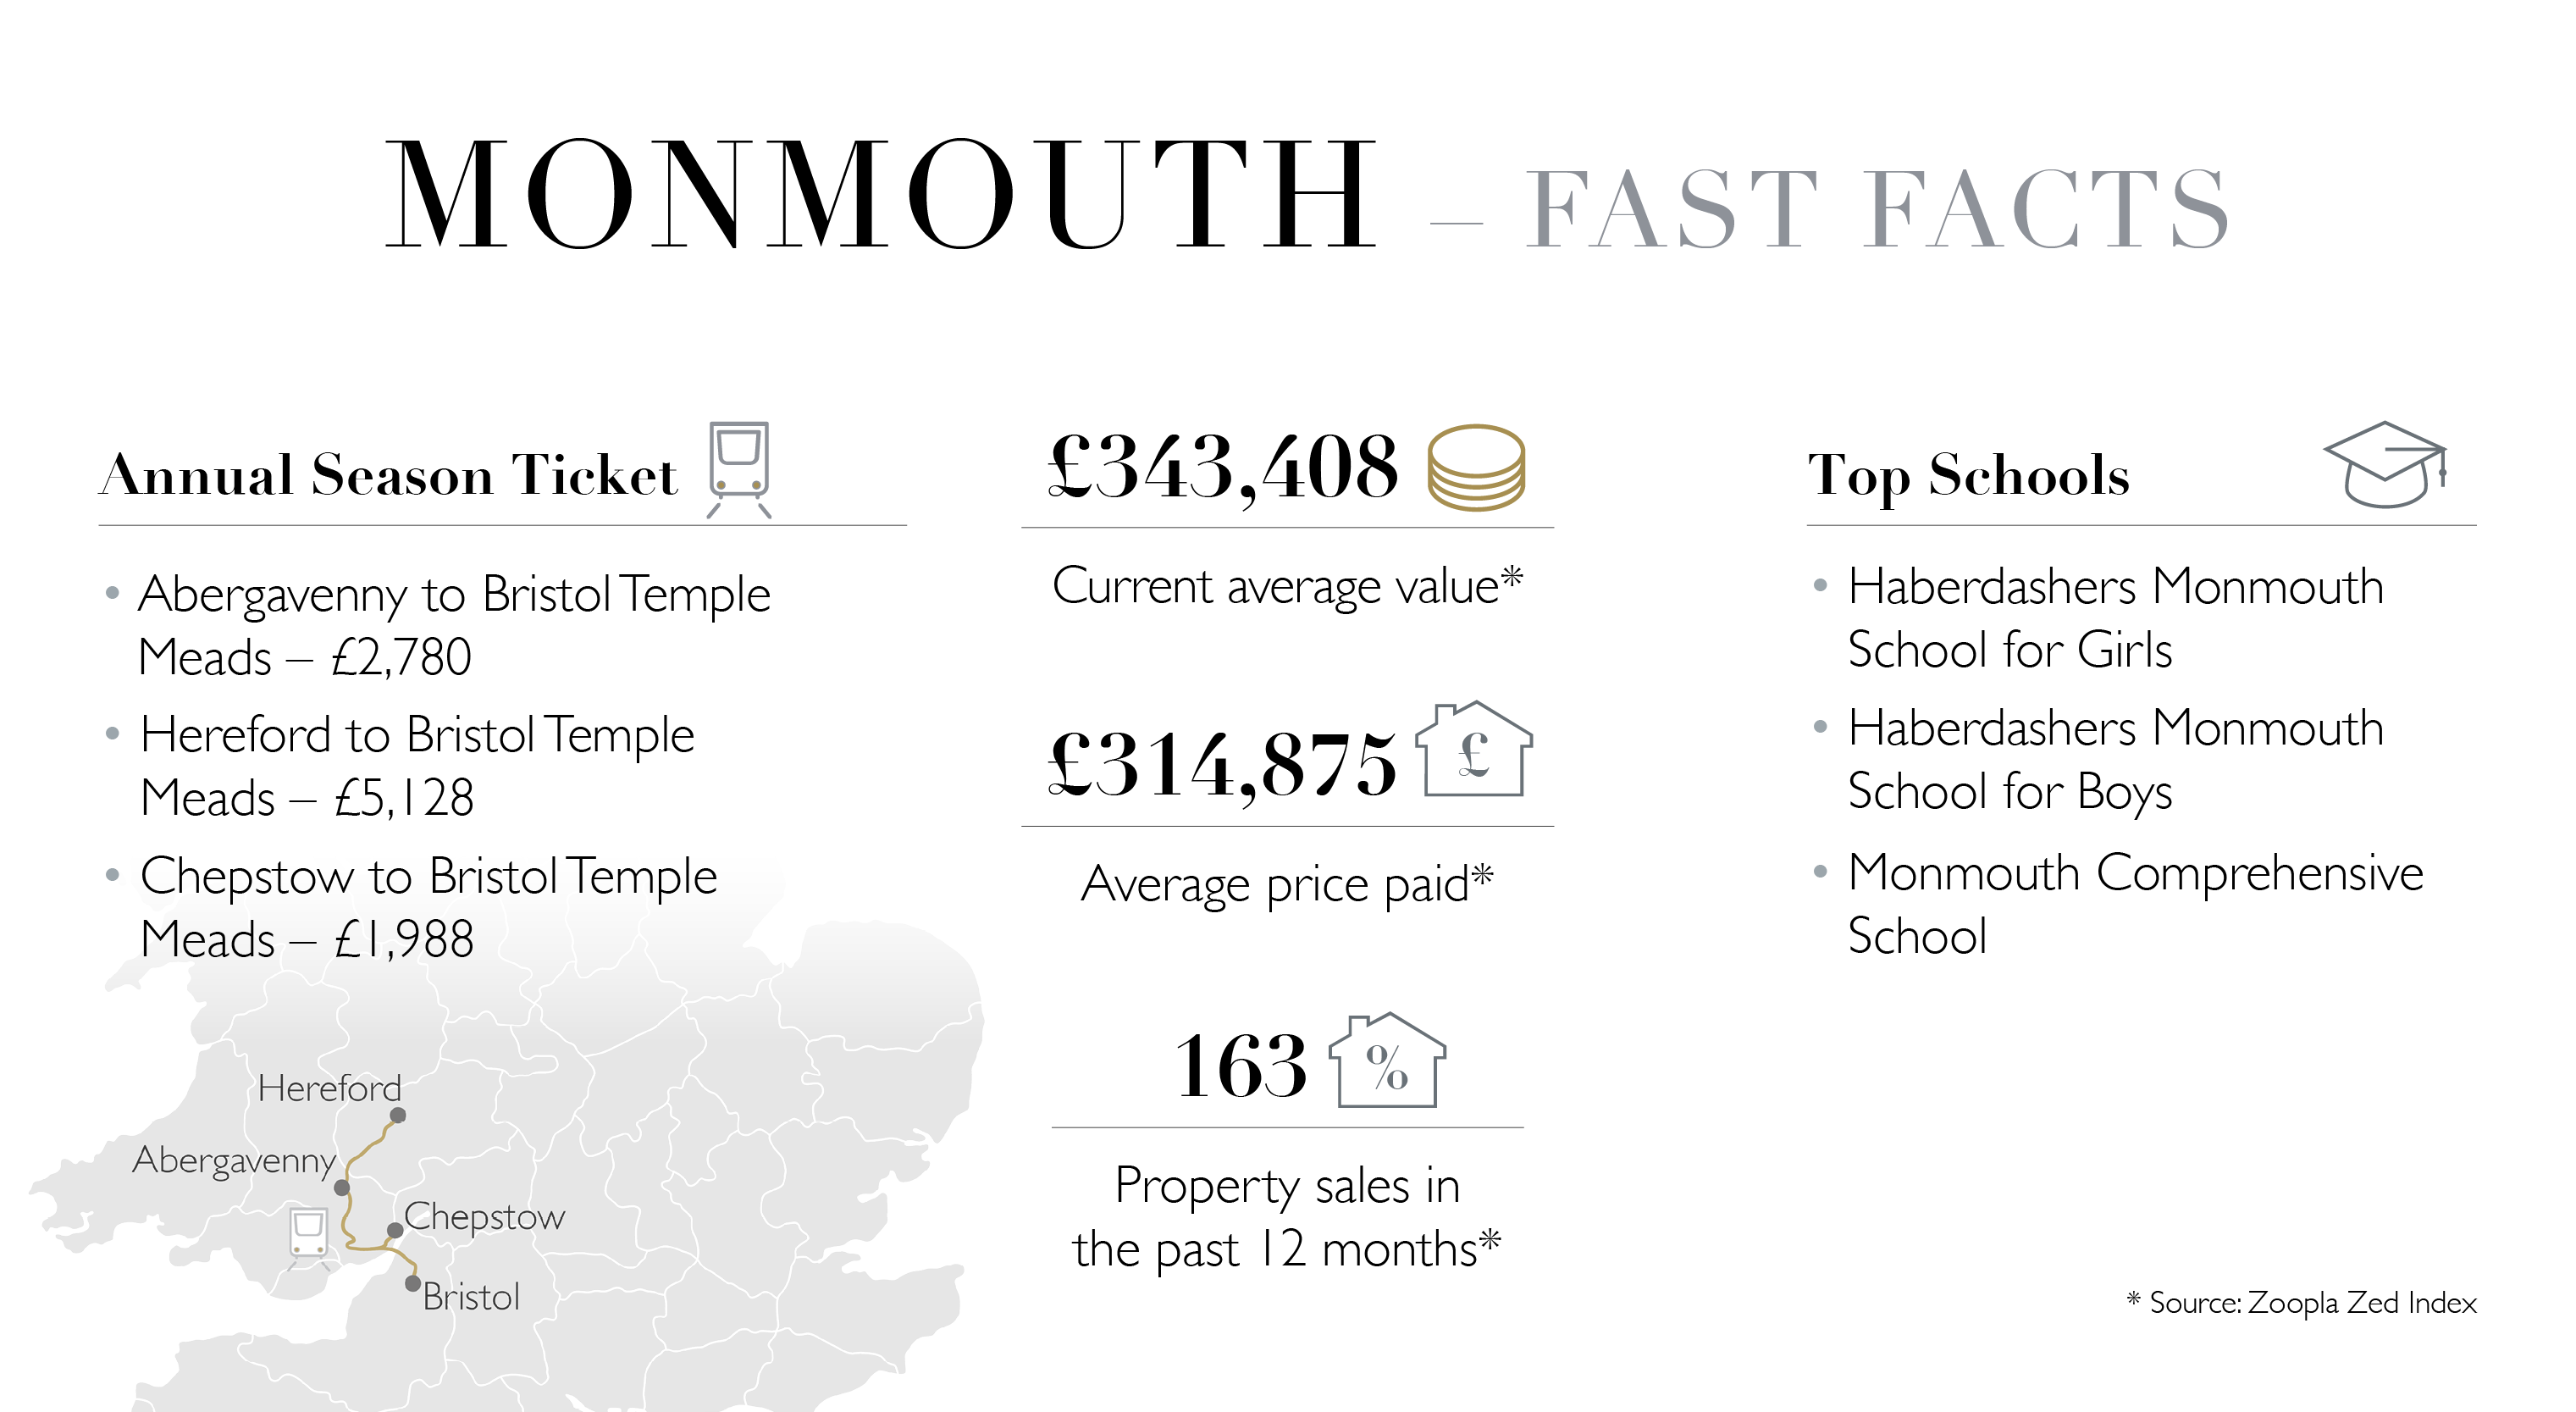 Monmouth Fast Facts